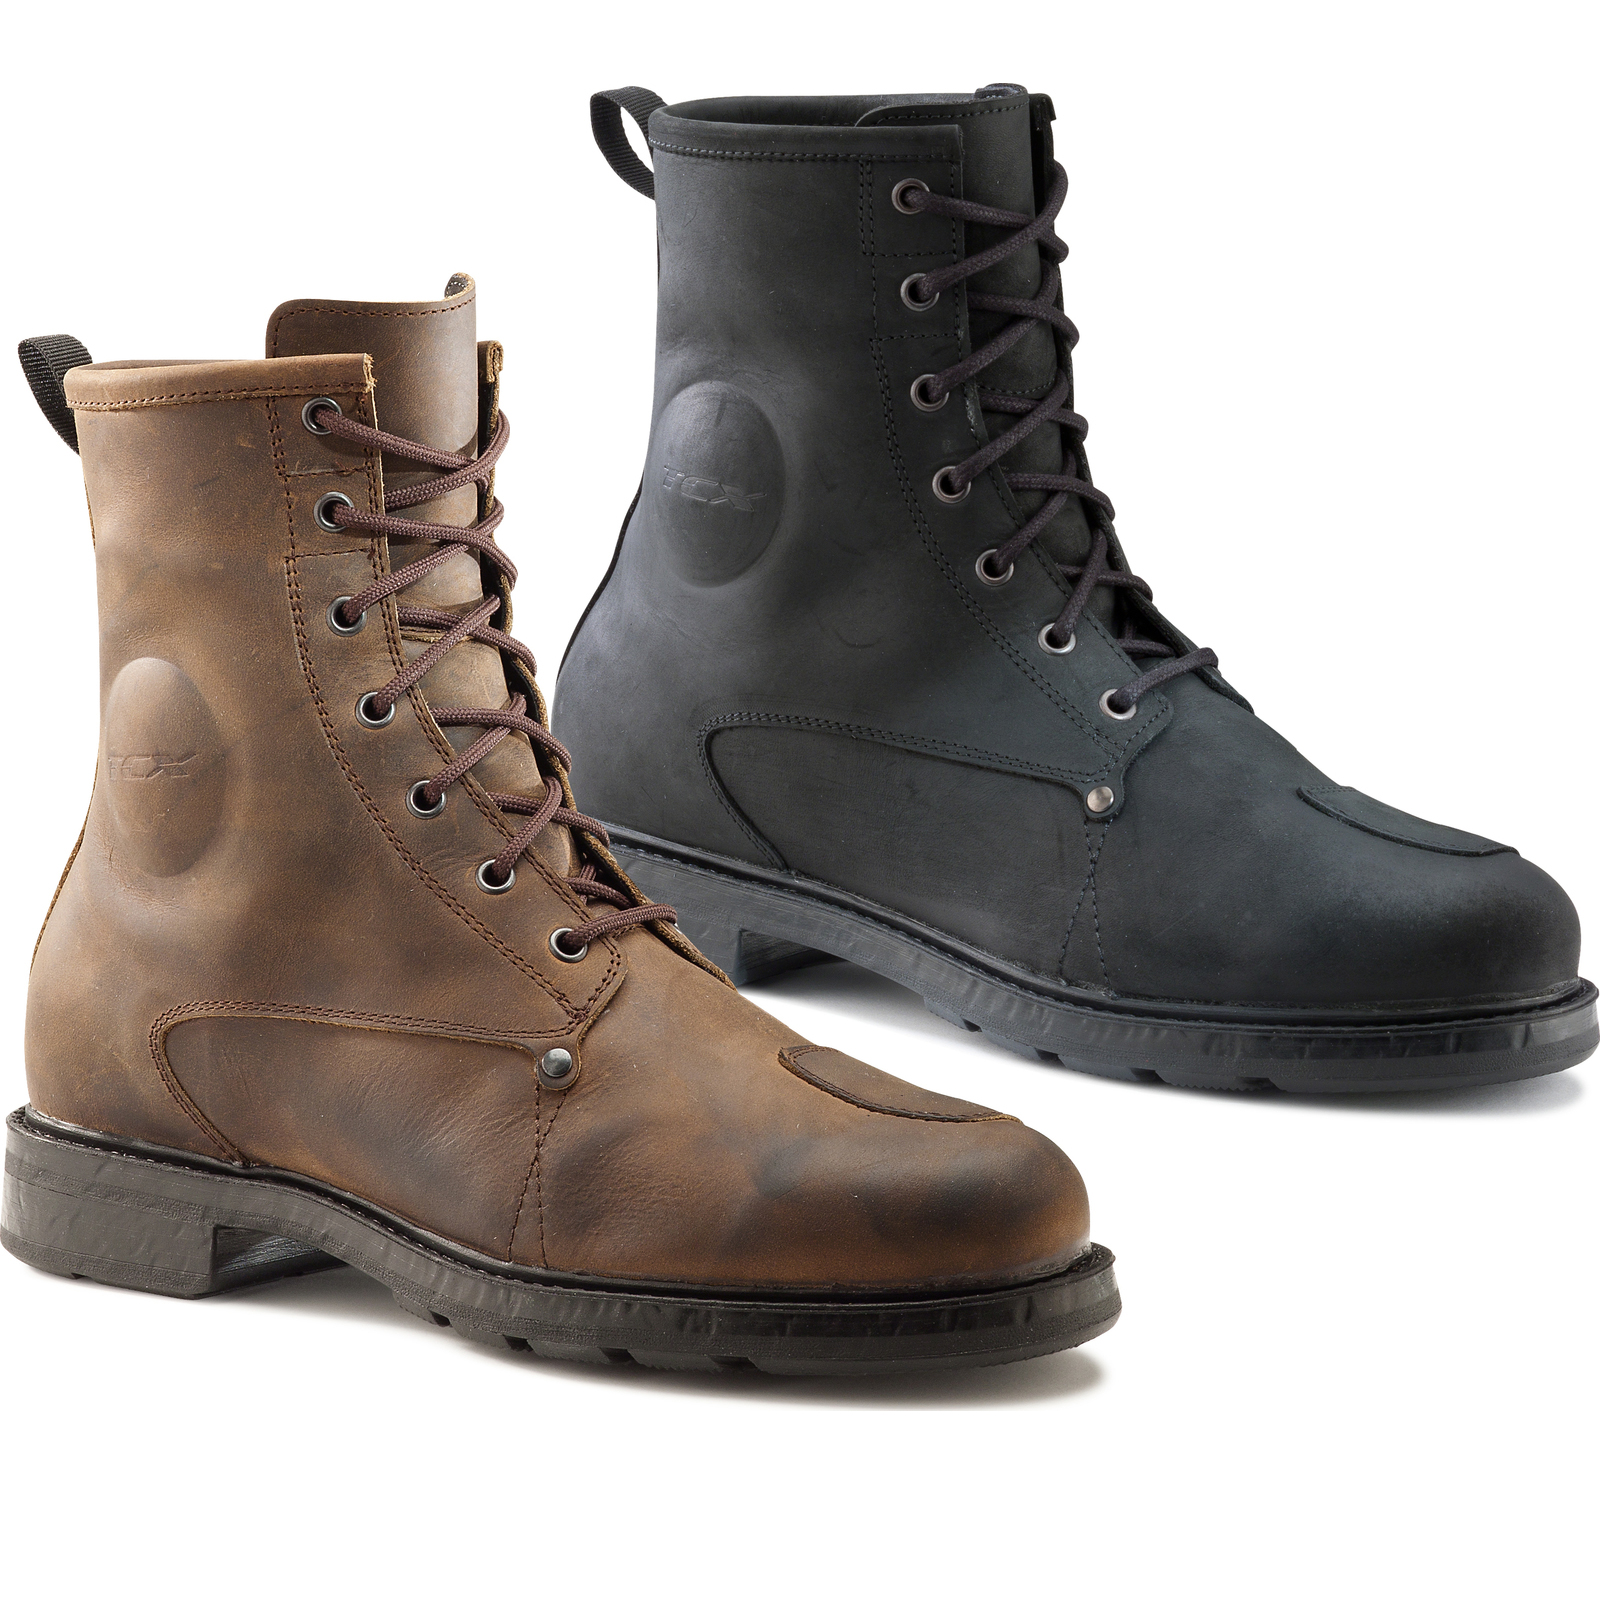 TCX X-Blend WP Motorcycle Boots - Urban & Casual Boots ...